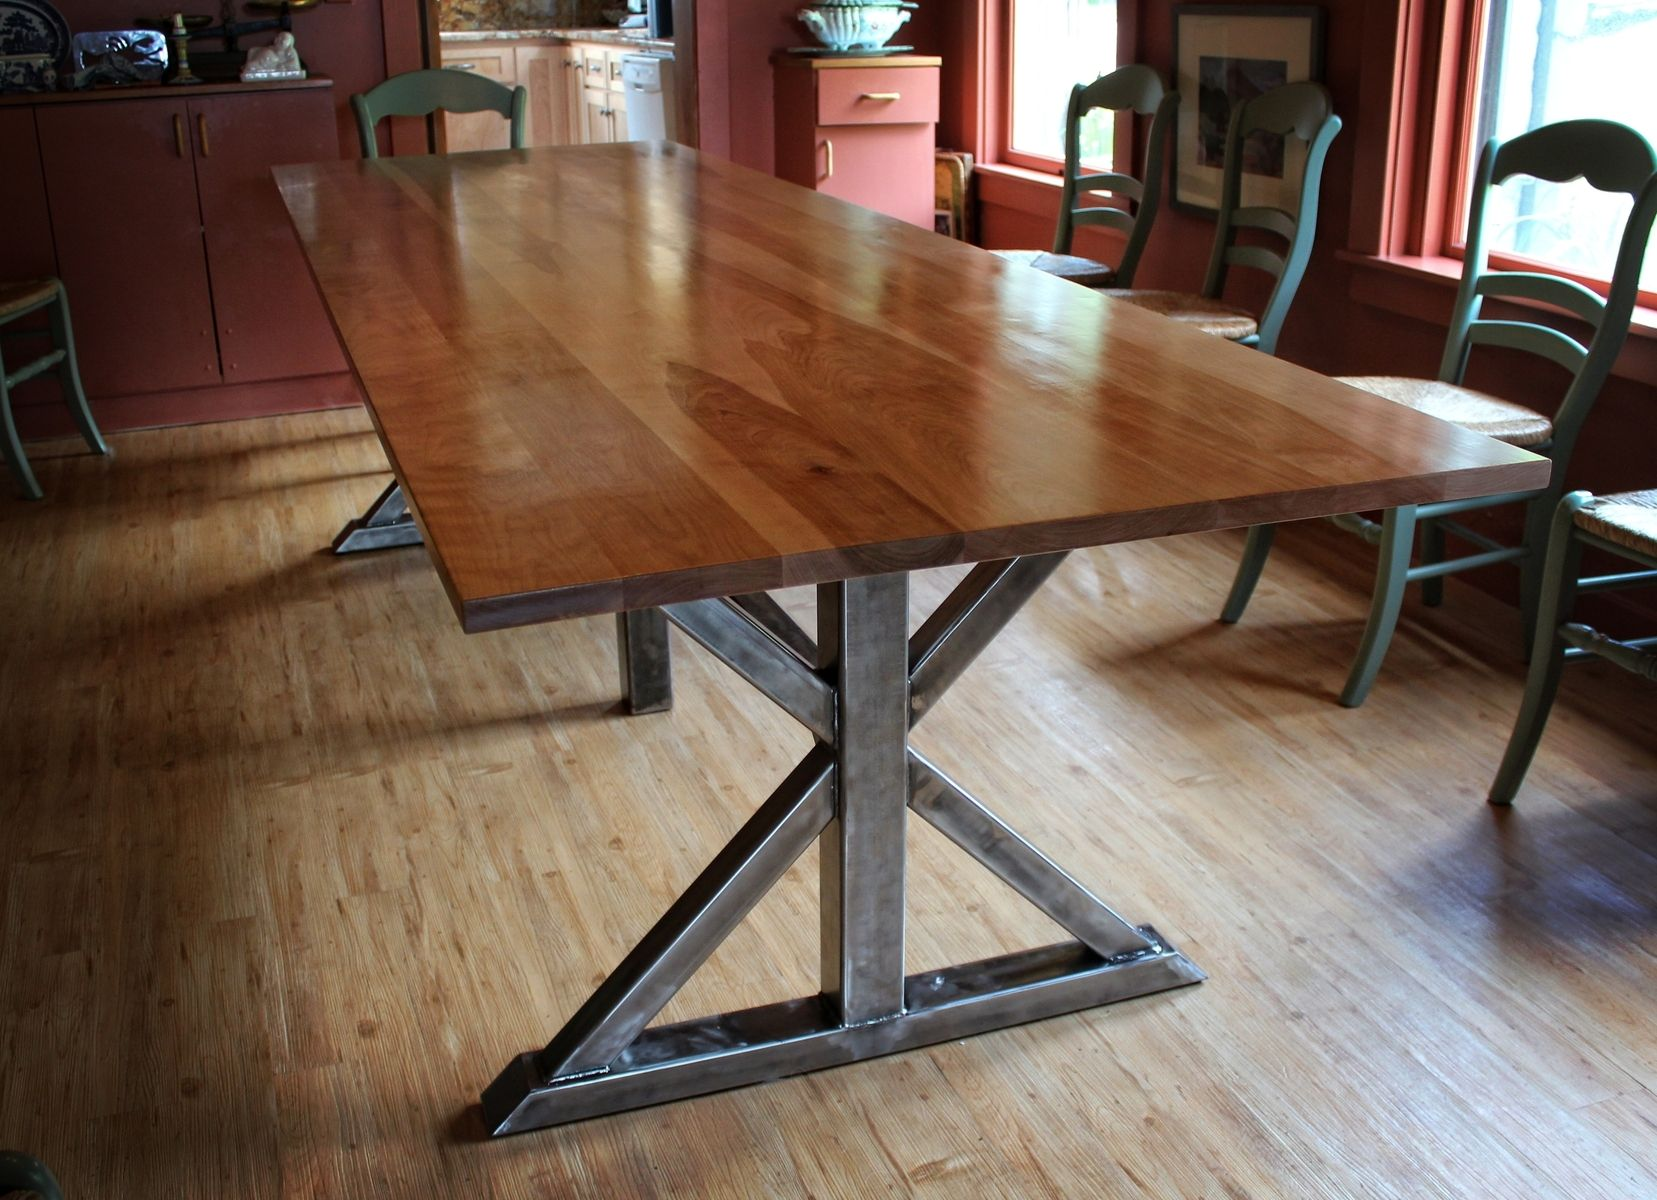 handmade birch and steel trestle dining table by higgins fabrication. Black Bedroom Furniture Sets. Home Design Ideas